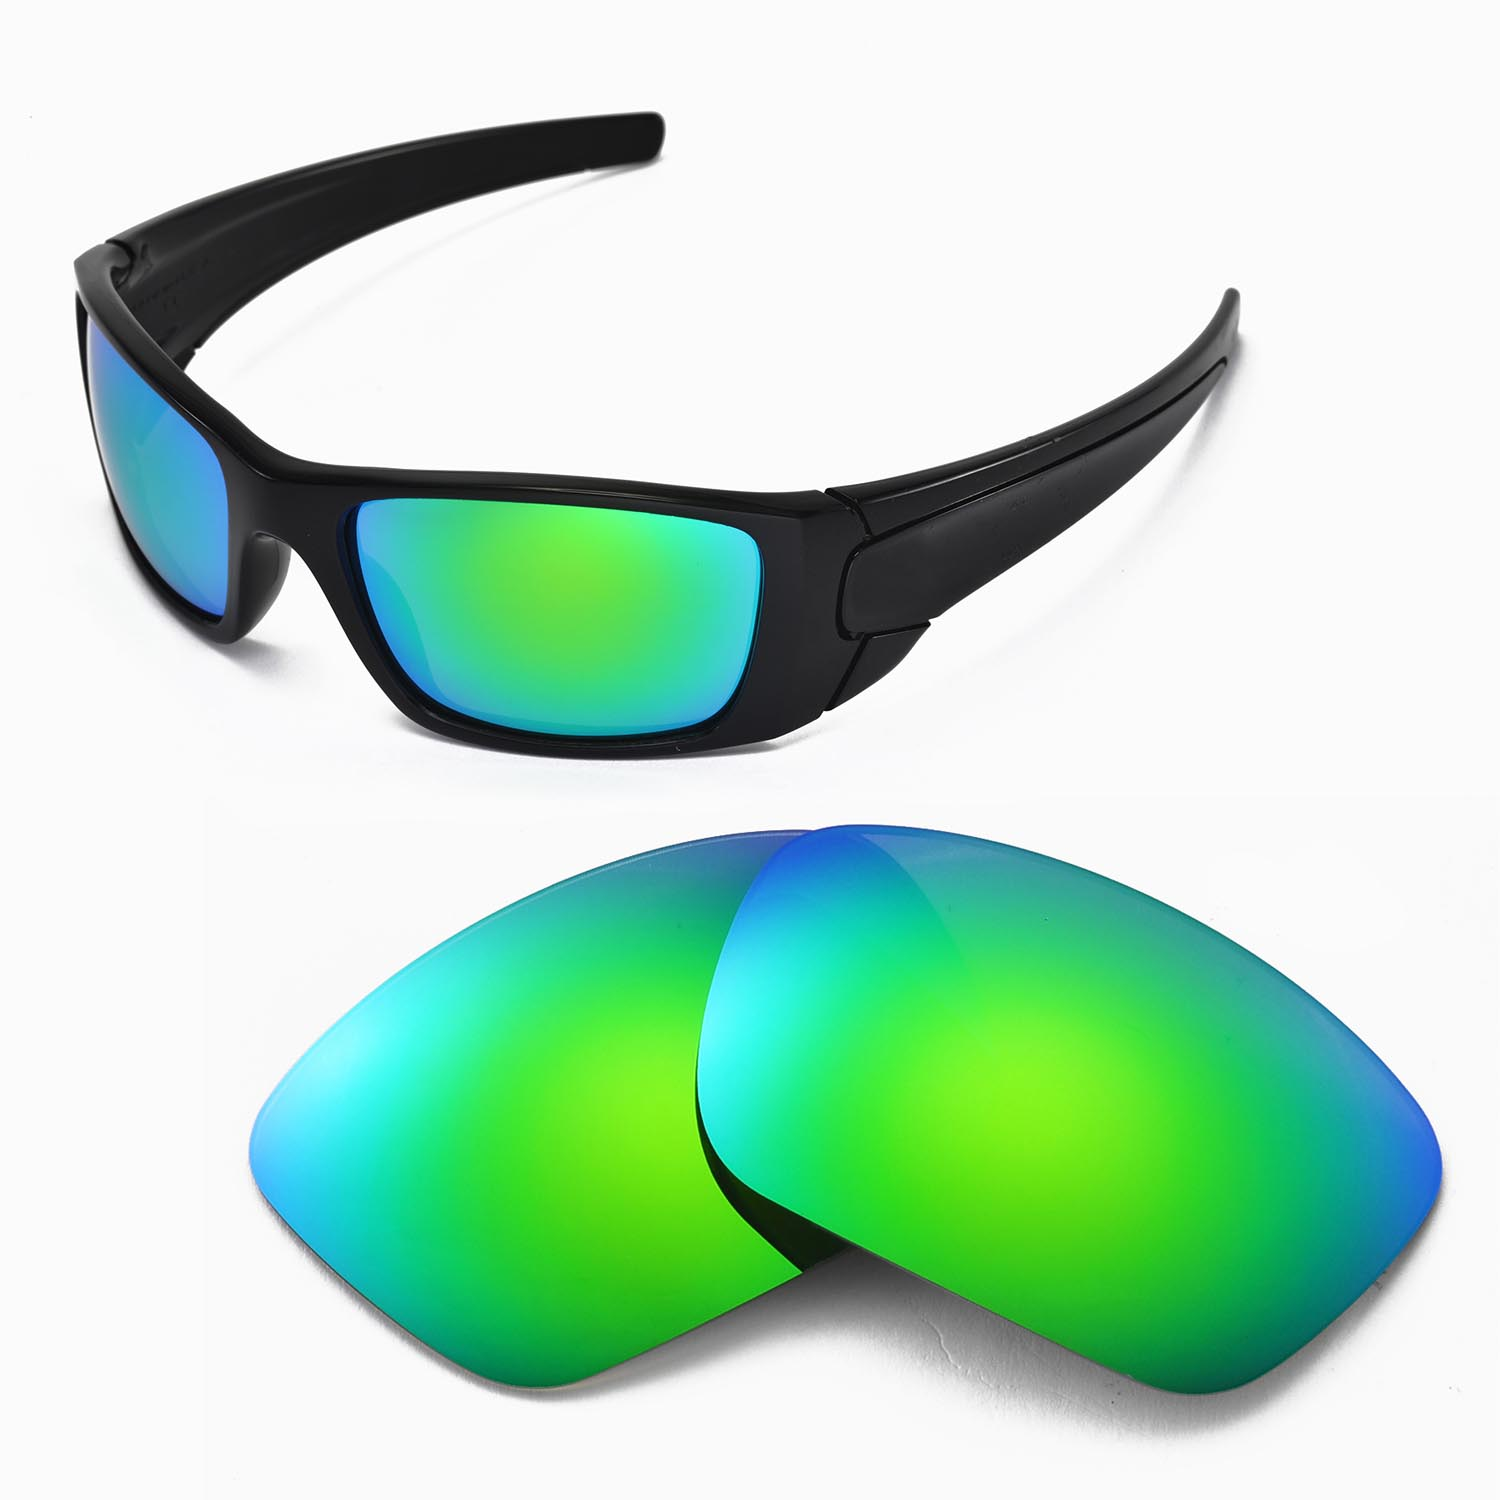 7083c8dab38 Walleva Replacement Lenses for Oakley Fuel Cell Sunglasses ...